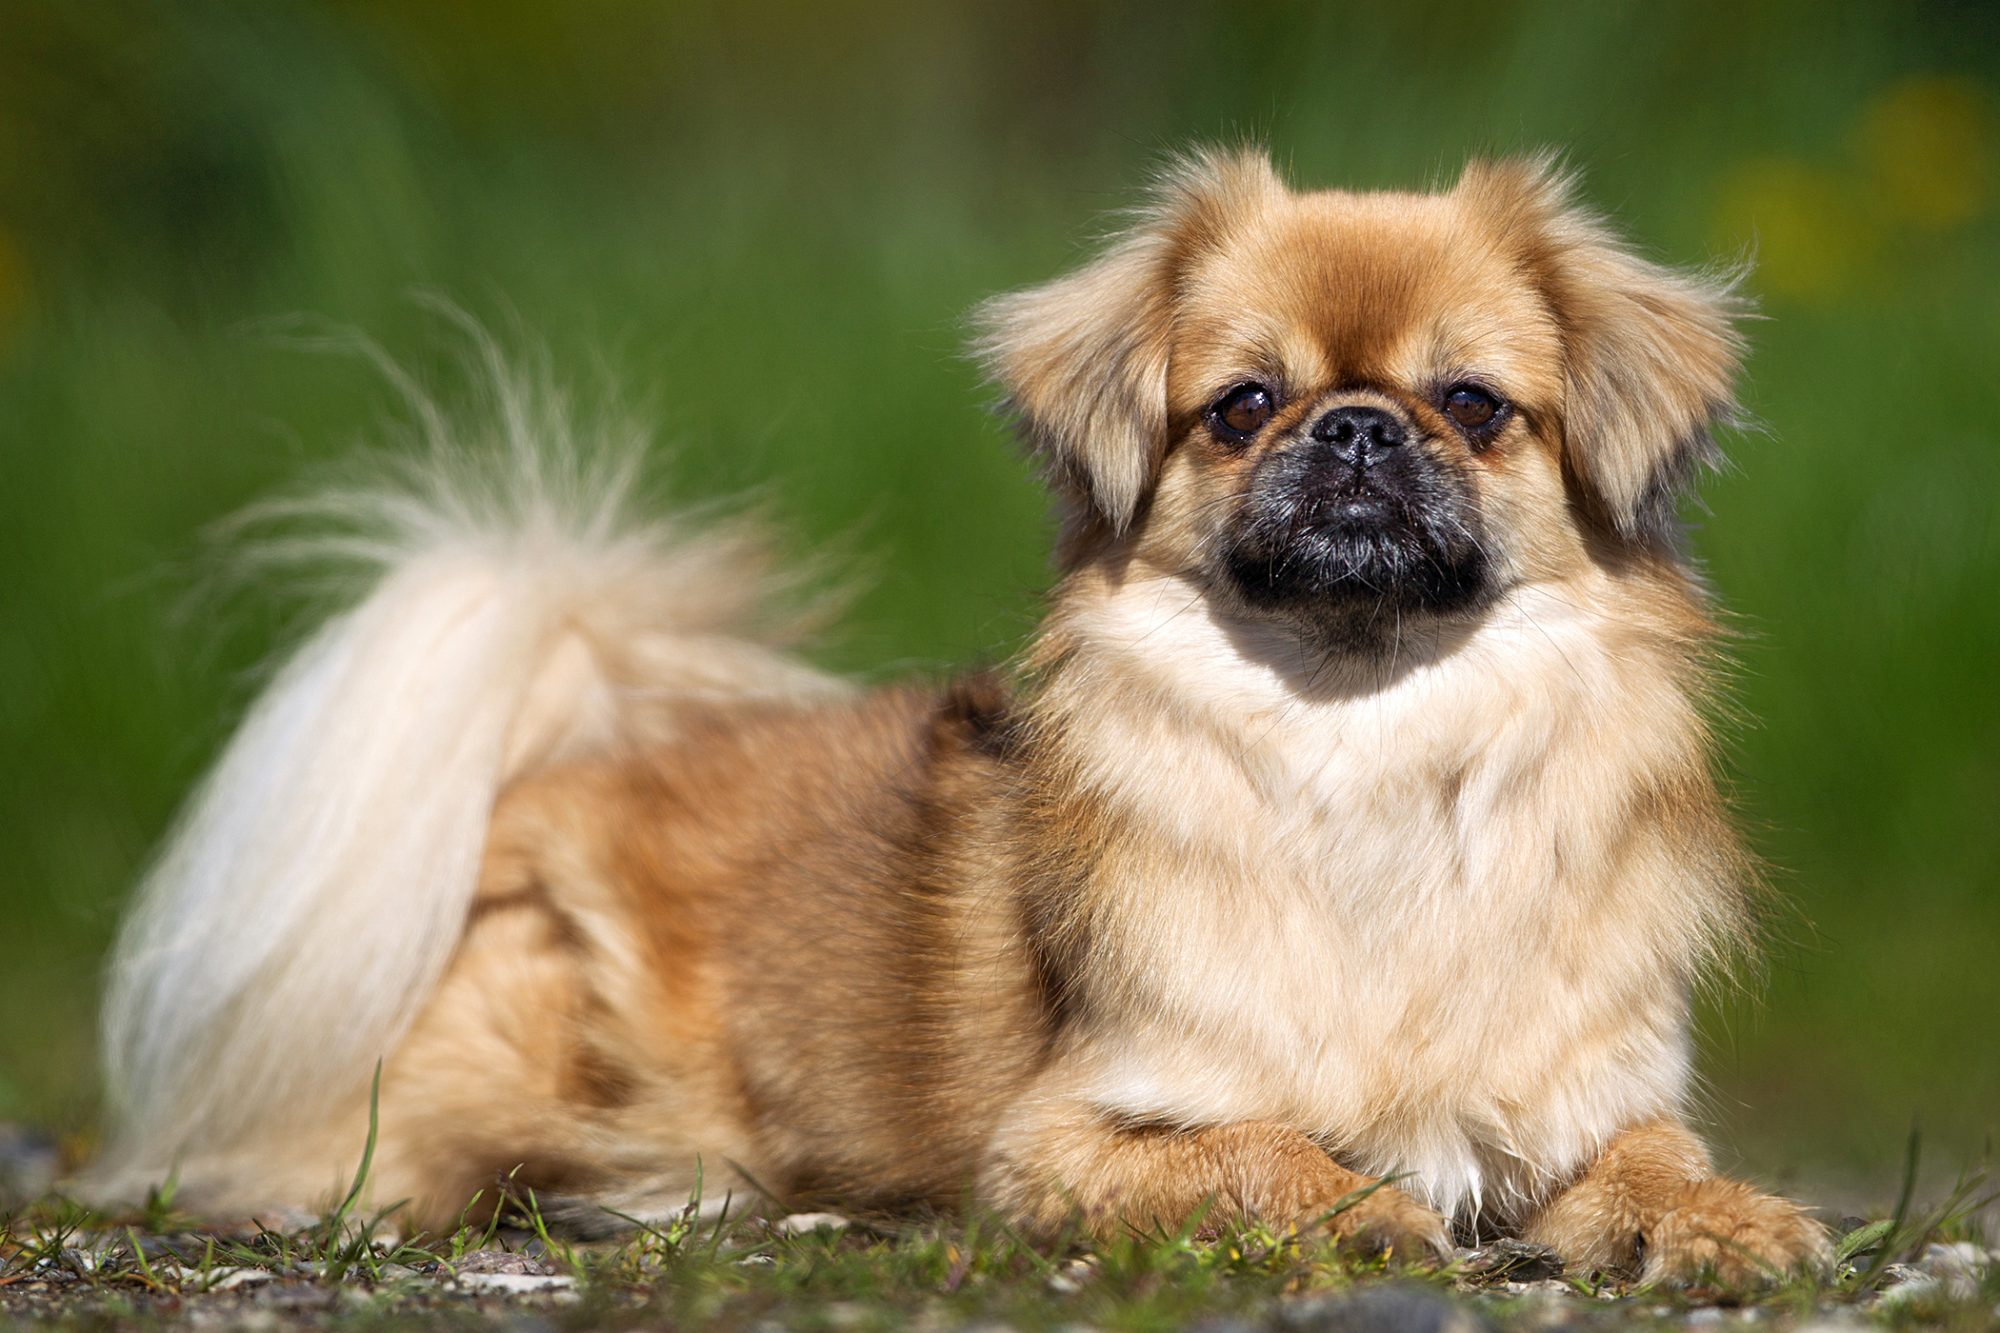 tibetan spaniel lying in grass looking at the camera